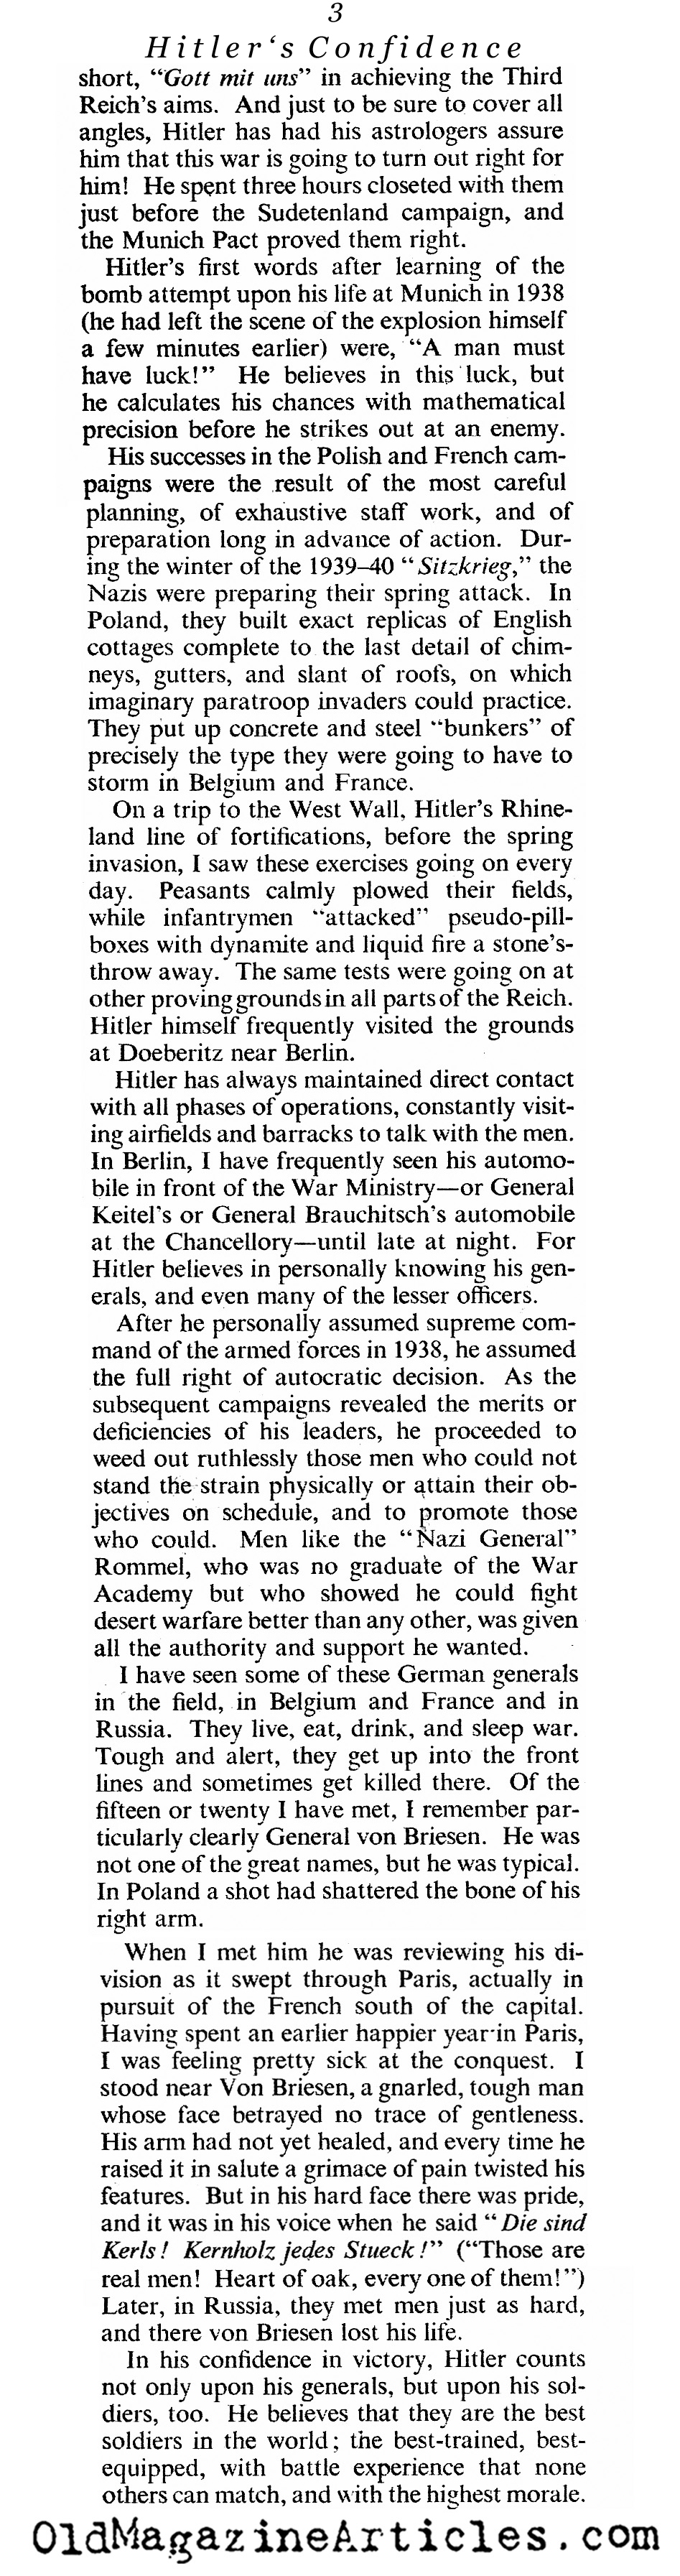 ''Why Hitler Thinks He'll Win'' (The American Magazine, 1942)